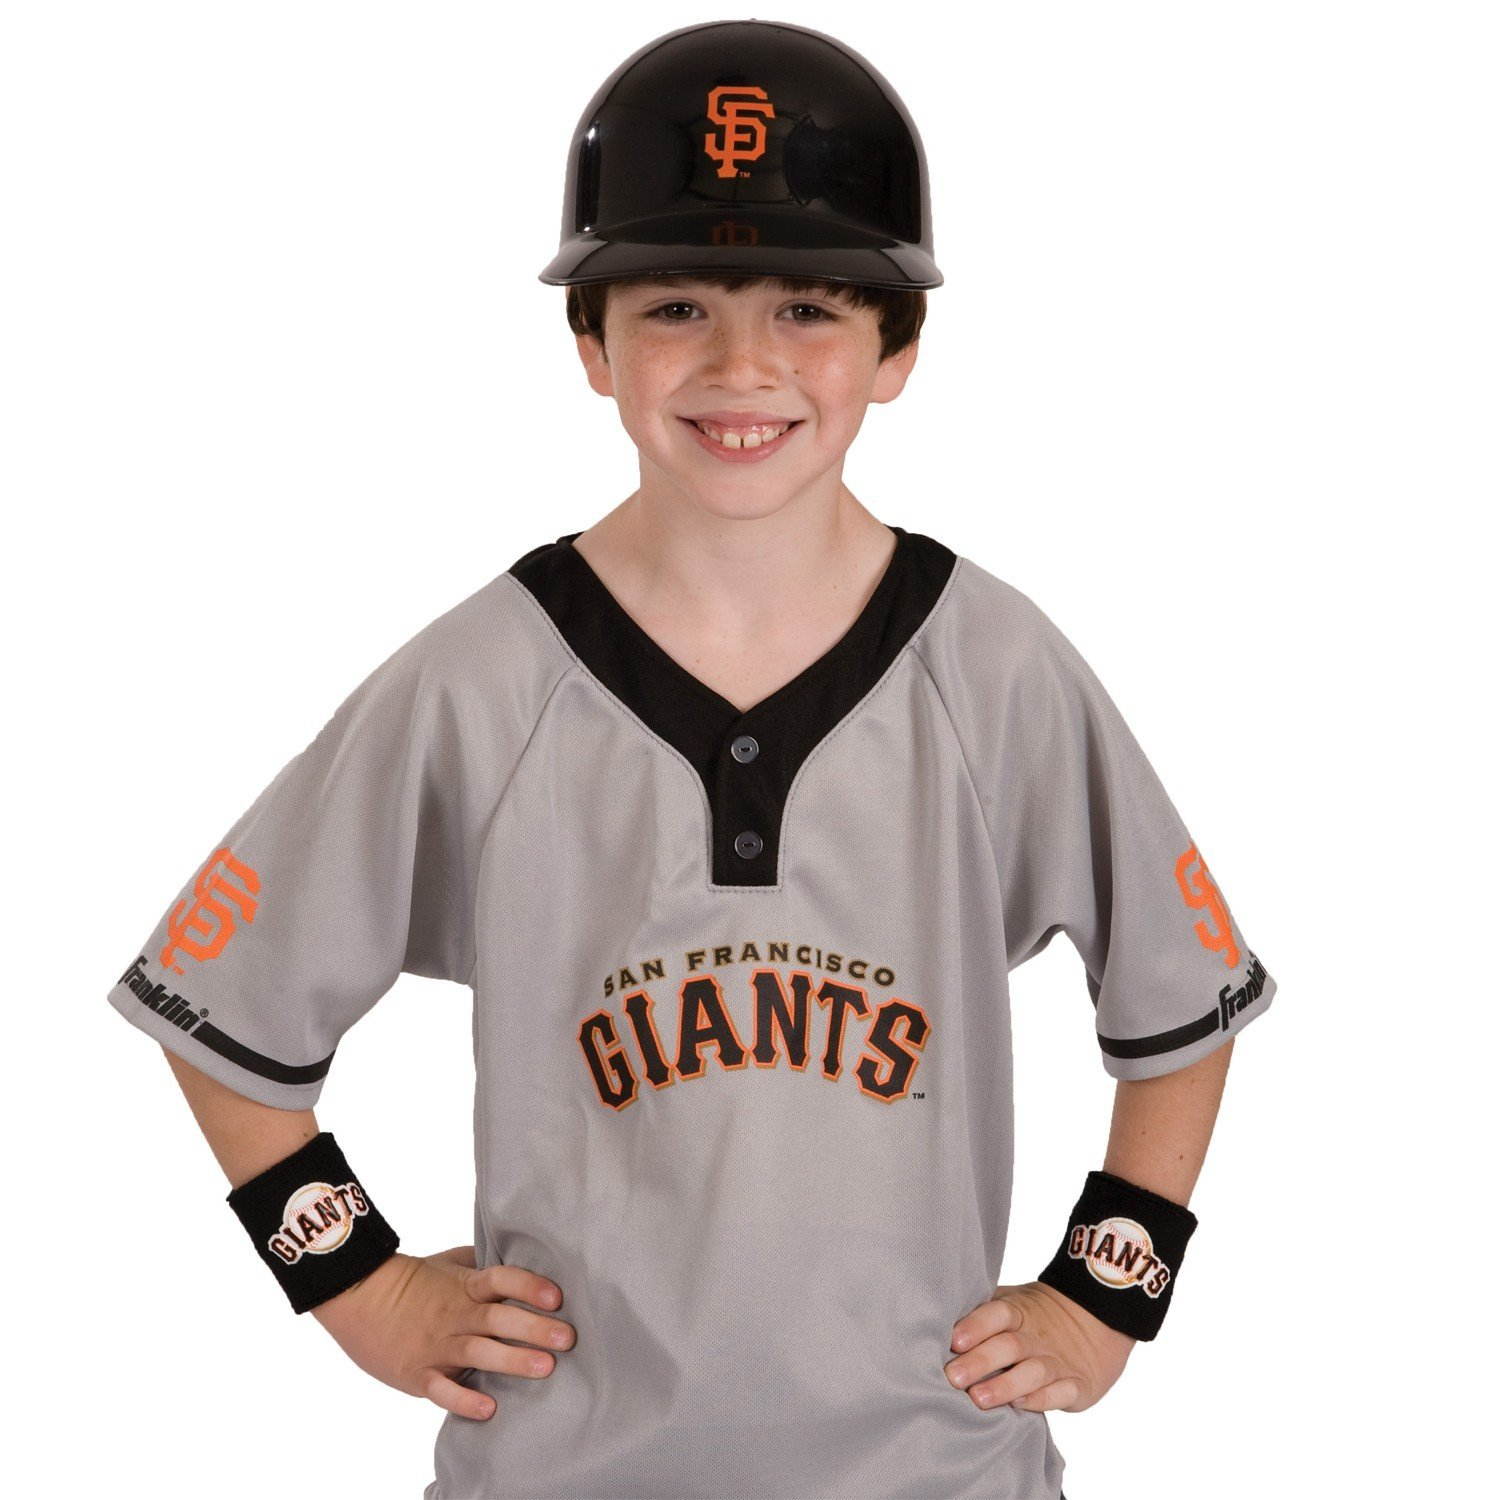 Child MLB Baseball Uniform Halloween Costumes